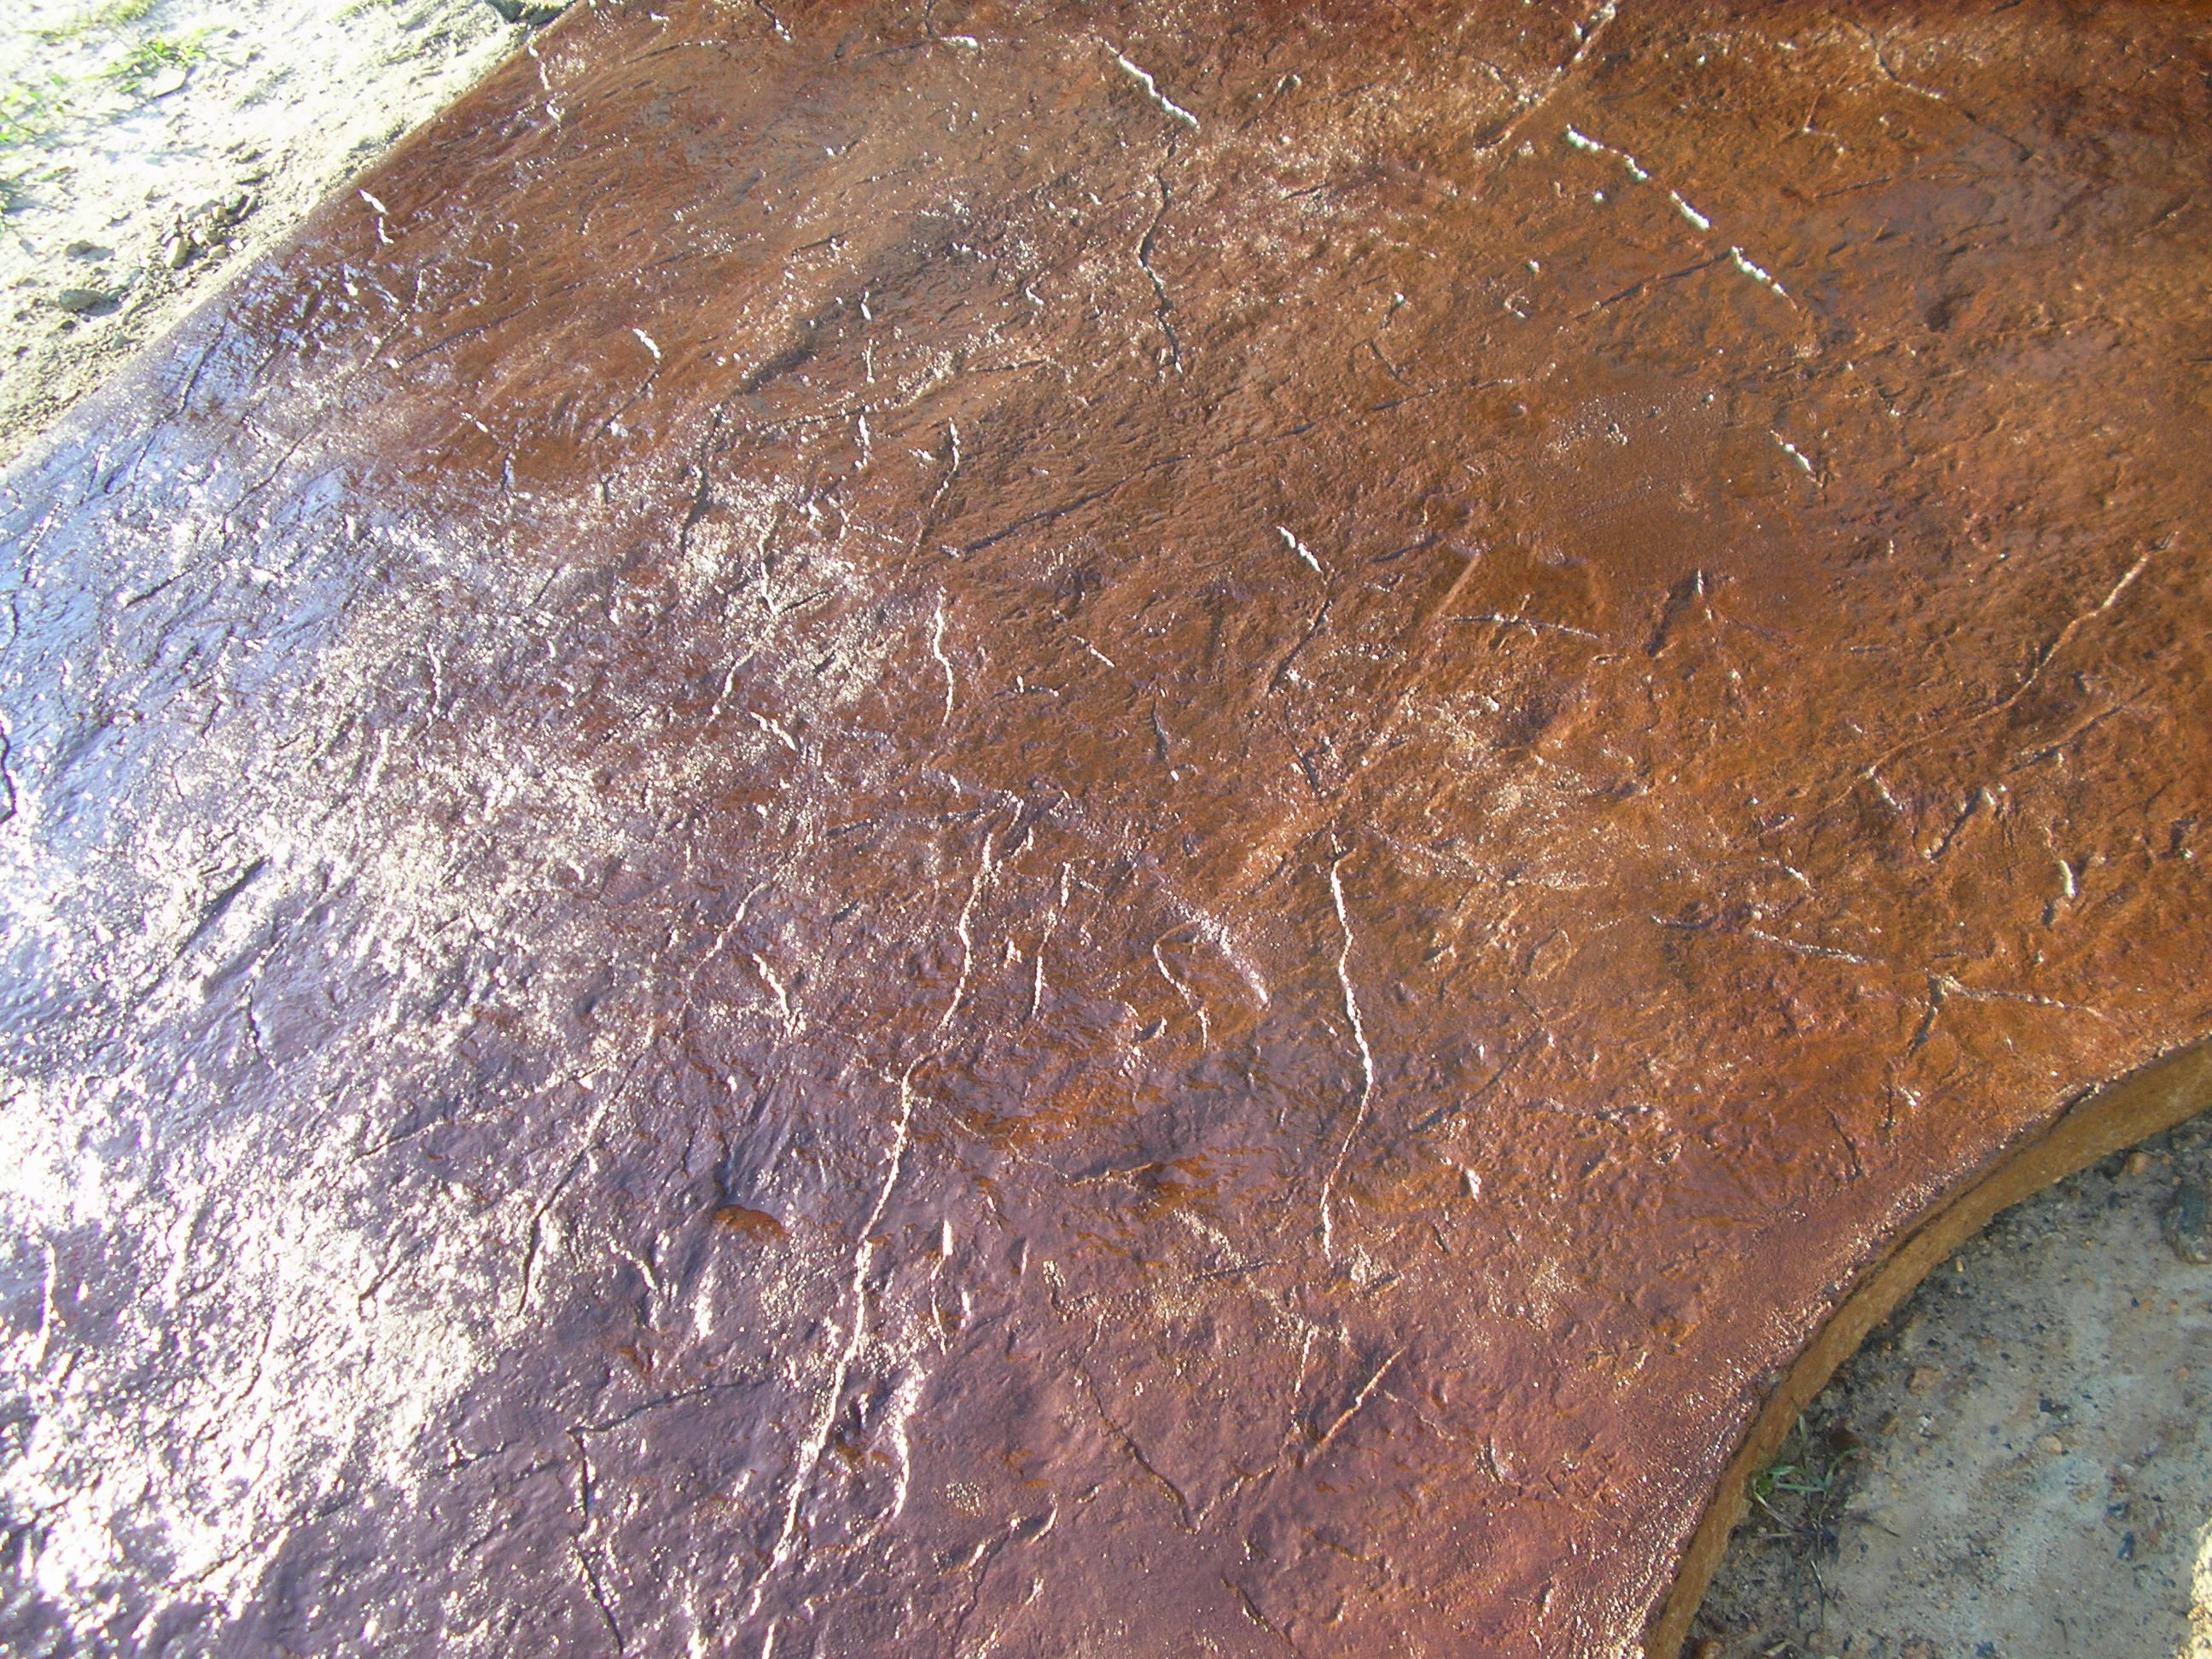 Finest Acid Stained Concrete Floors & Countertops - Marques HY75